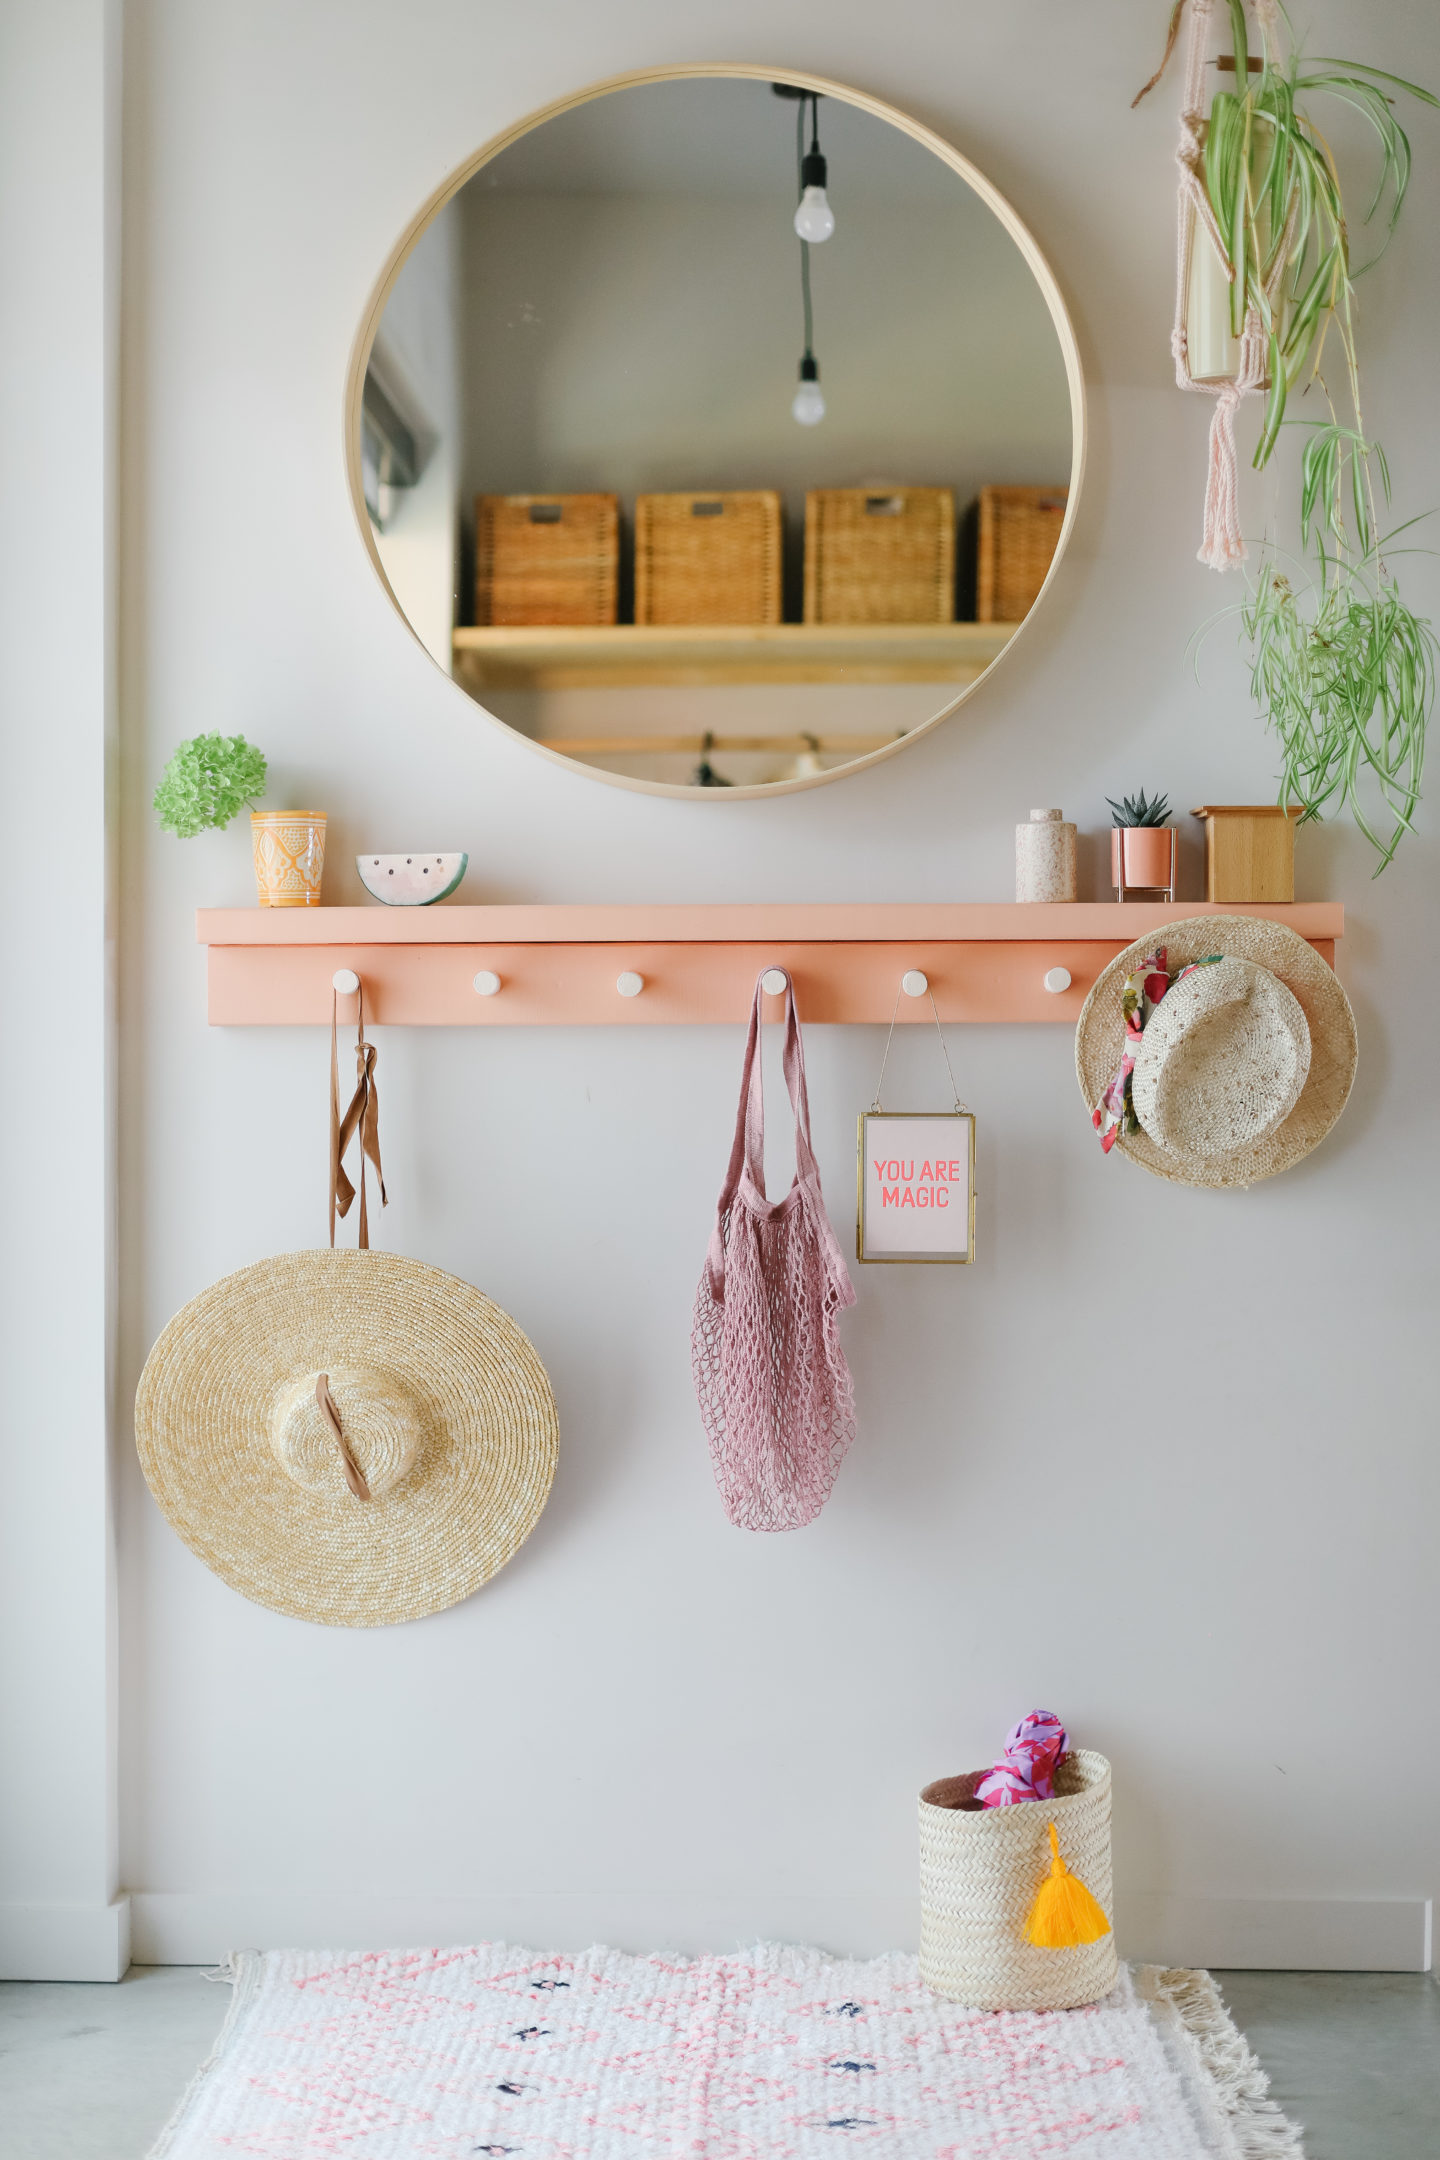 How to do an easy coat rack